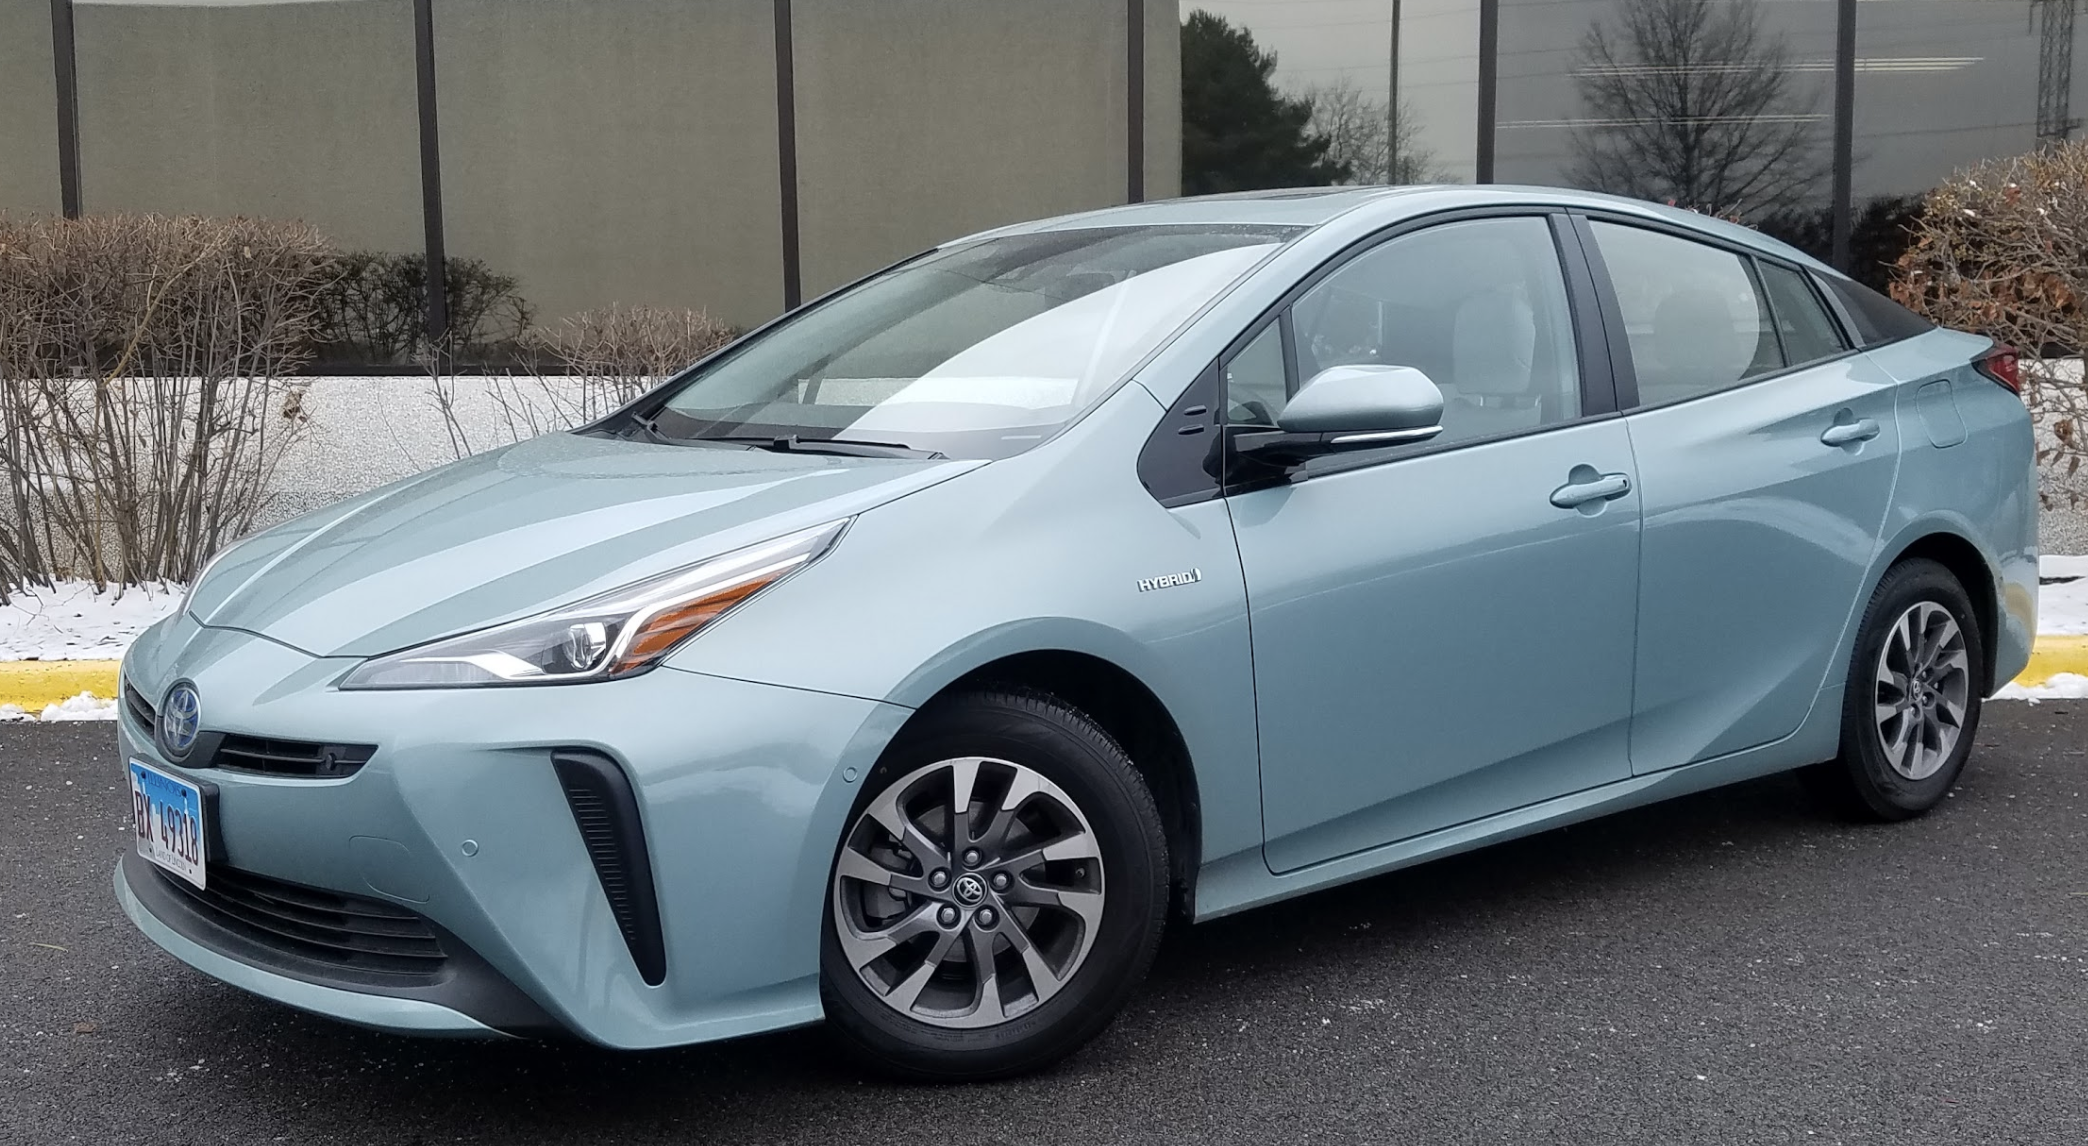 2020 Toyota Prius The Daily Drive   Consumer Guide®